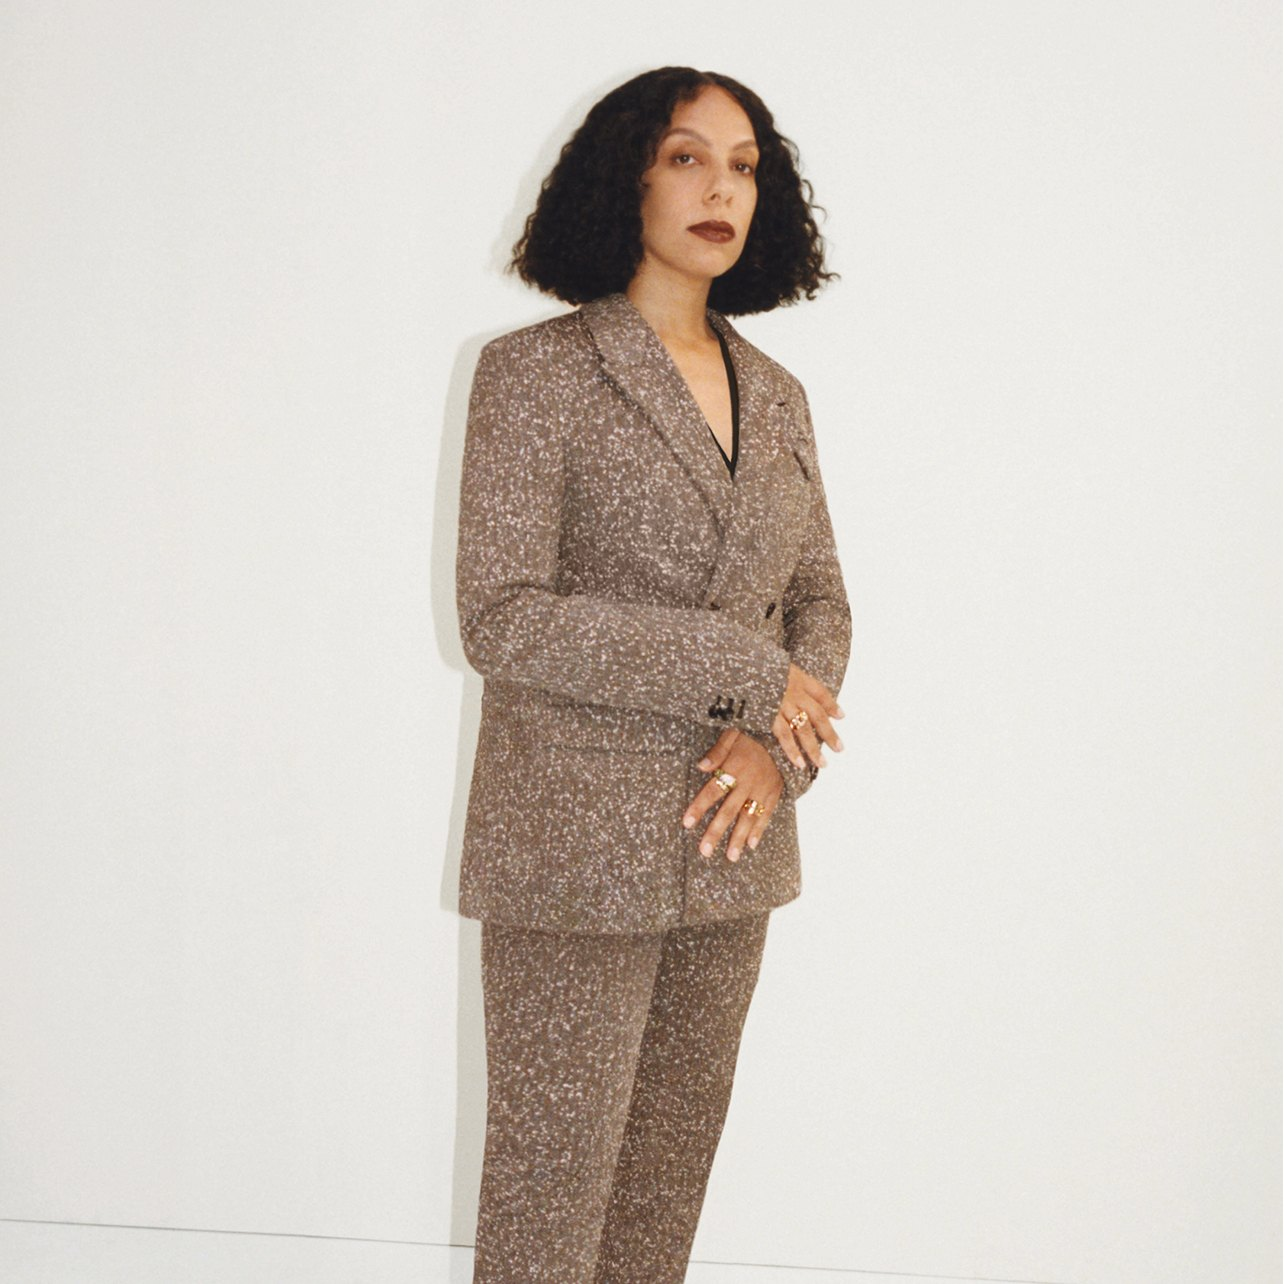 Woman poses wearing a brown pant suit with white speckled detailing